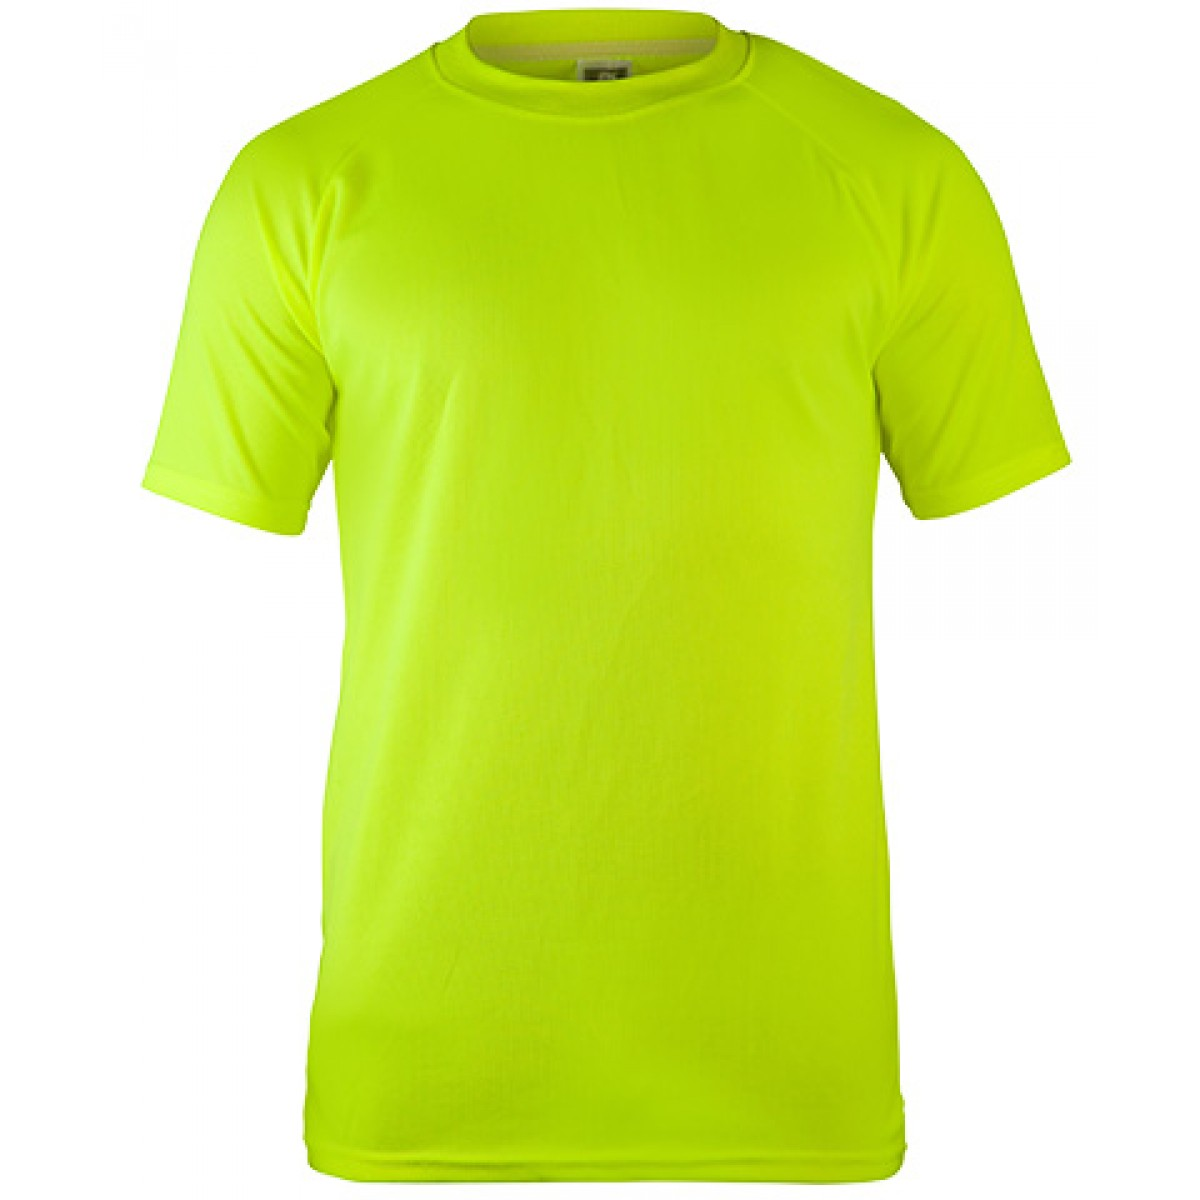 Performance T-shirt-Safety Green-2XL